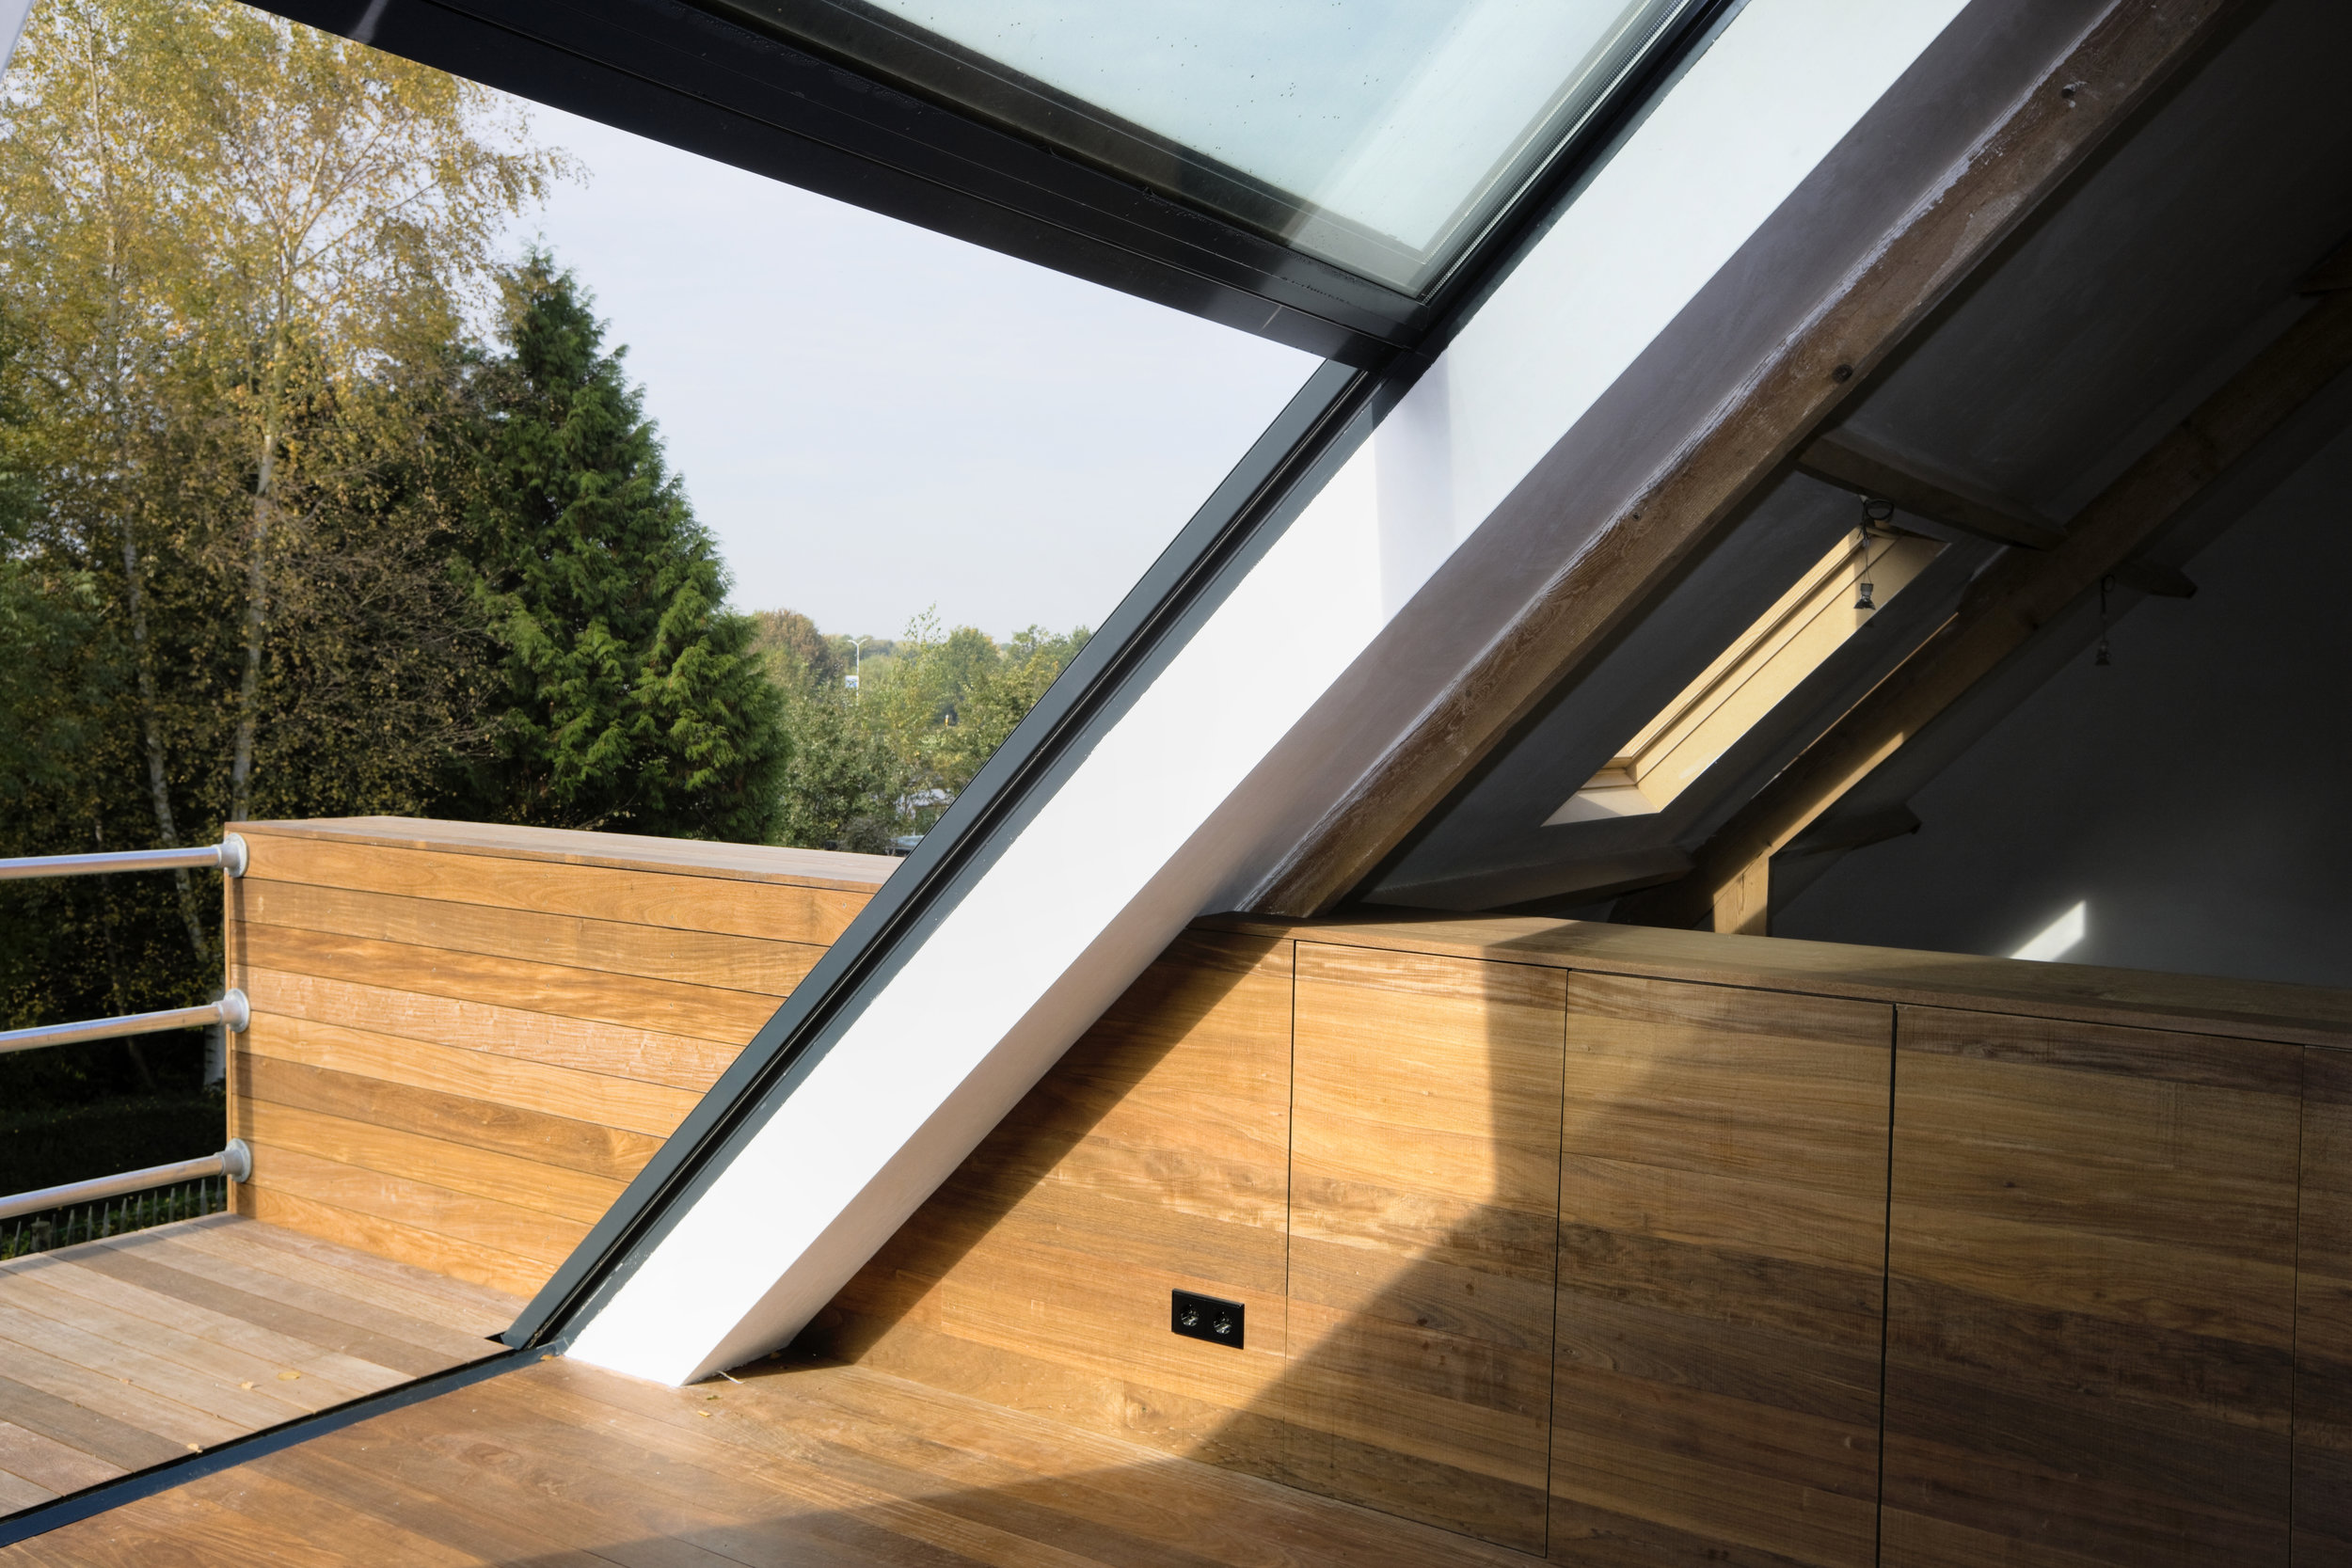 a large upward sliding window gives access to the balcony and allows for light to enter the former stable